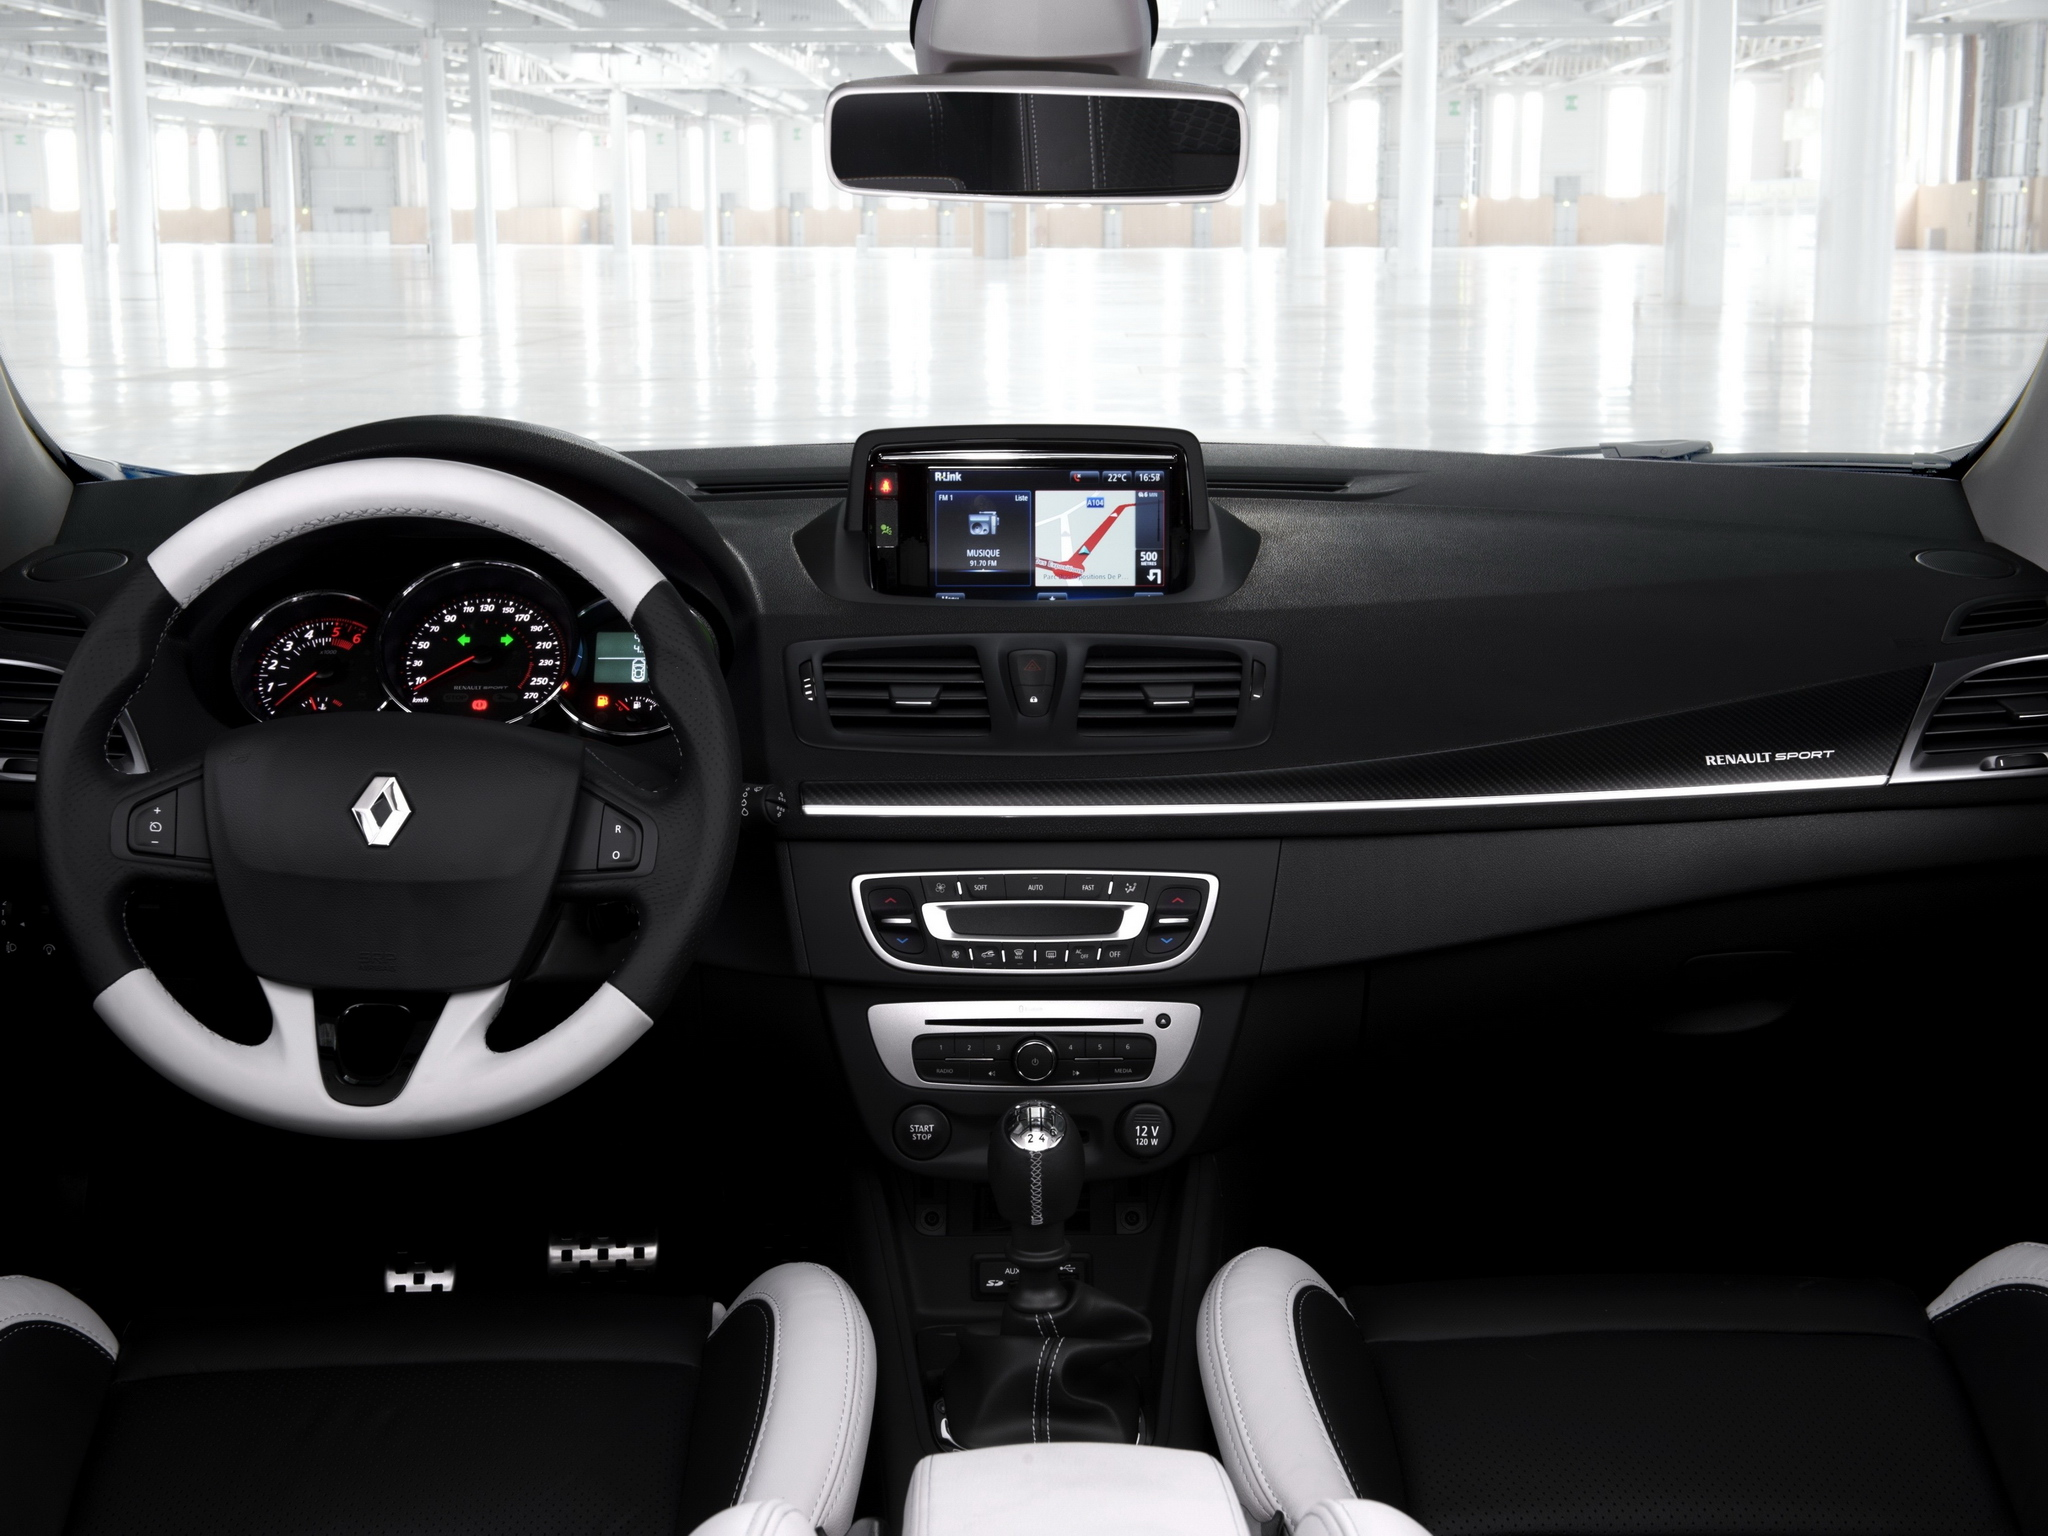 2014 renault megane g t coupe interior h wallpaper. Black Bedroom Furniture Sets. Home Design Ideas